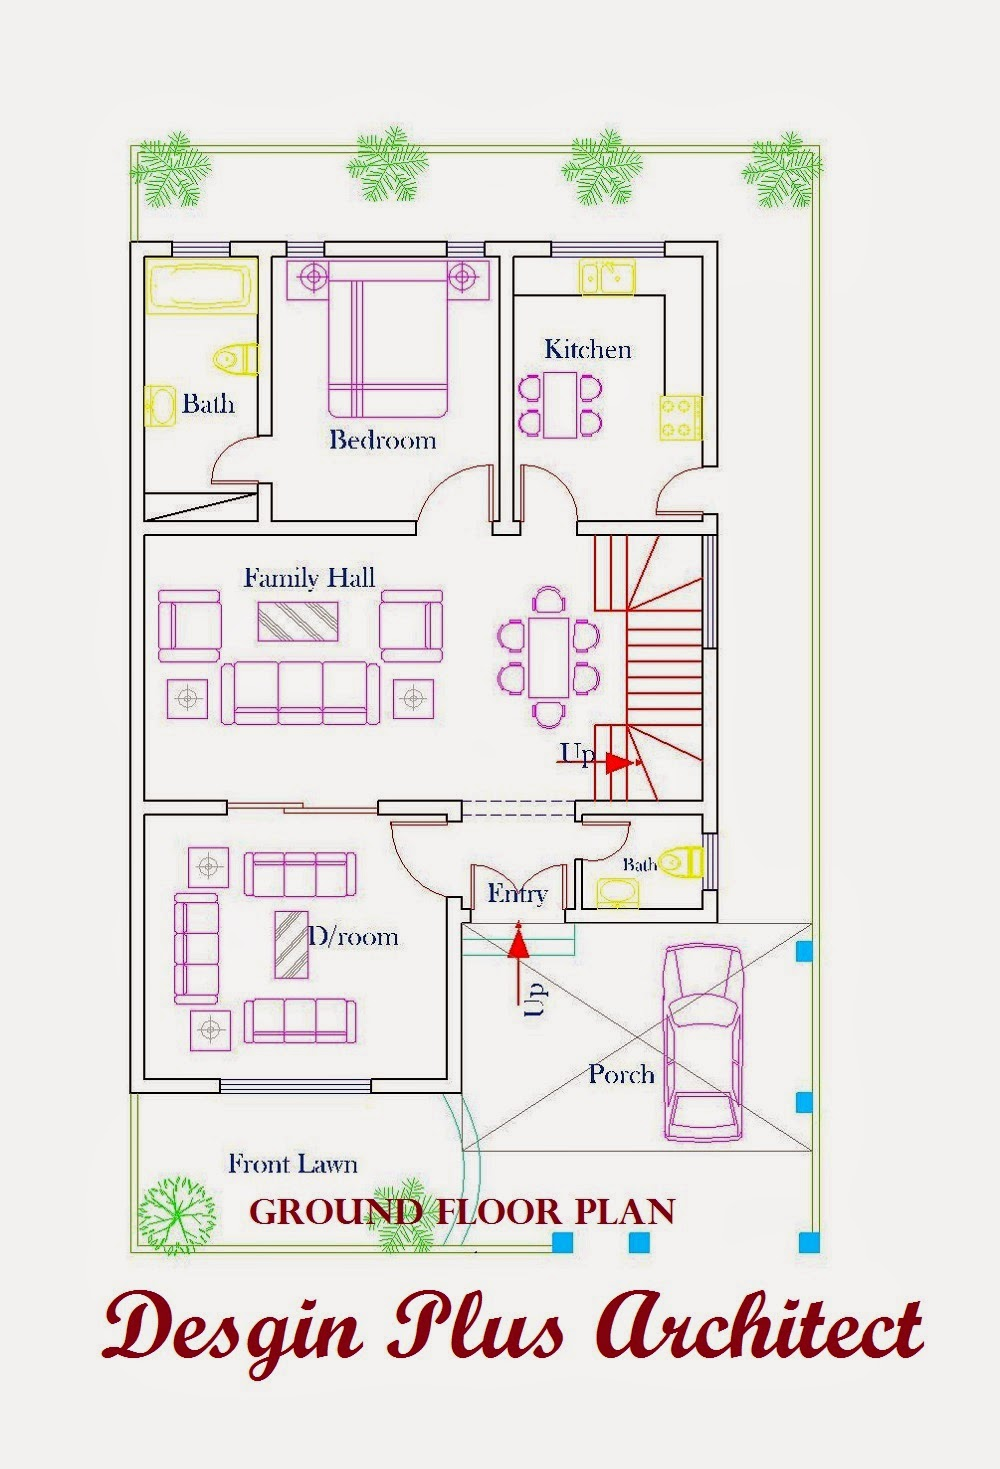 Home Design In Pakistan house design ideas in pakistan House Plan Design In Pakistan